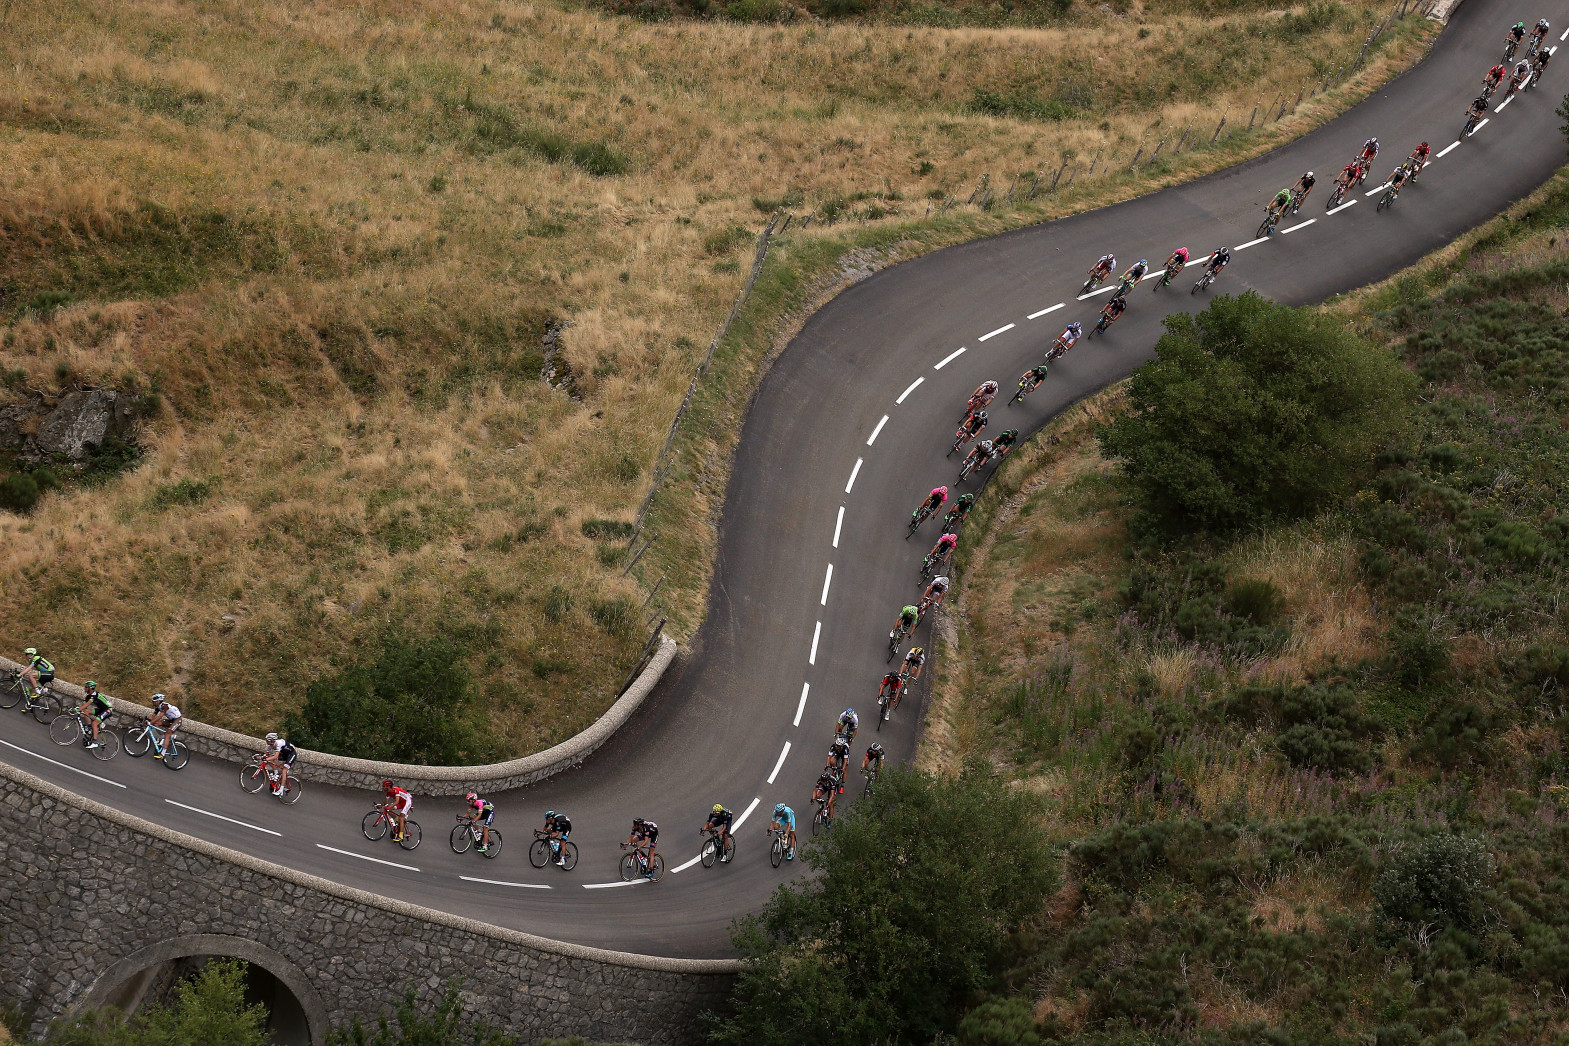 LA SOUCHE, FRANCE - JULY 19:  The peloton makes the descent of the Col de la Croix de Bauzon during stage 15 of the 2015 Tour de France from Mende to Valence on July 19, 2015 in La Souche, France.  (Photo by Doug Pensinger/Getty Images)